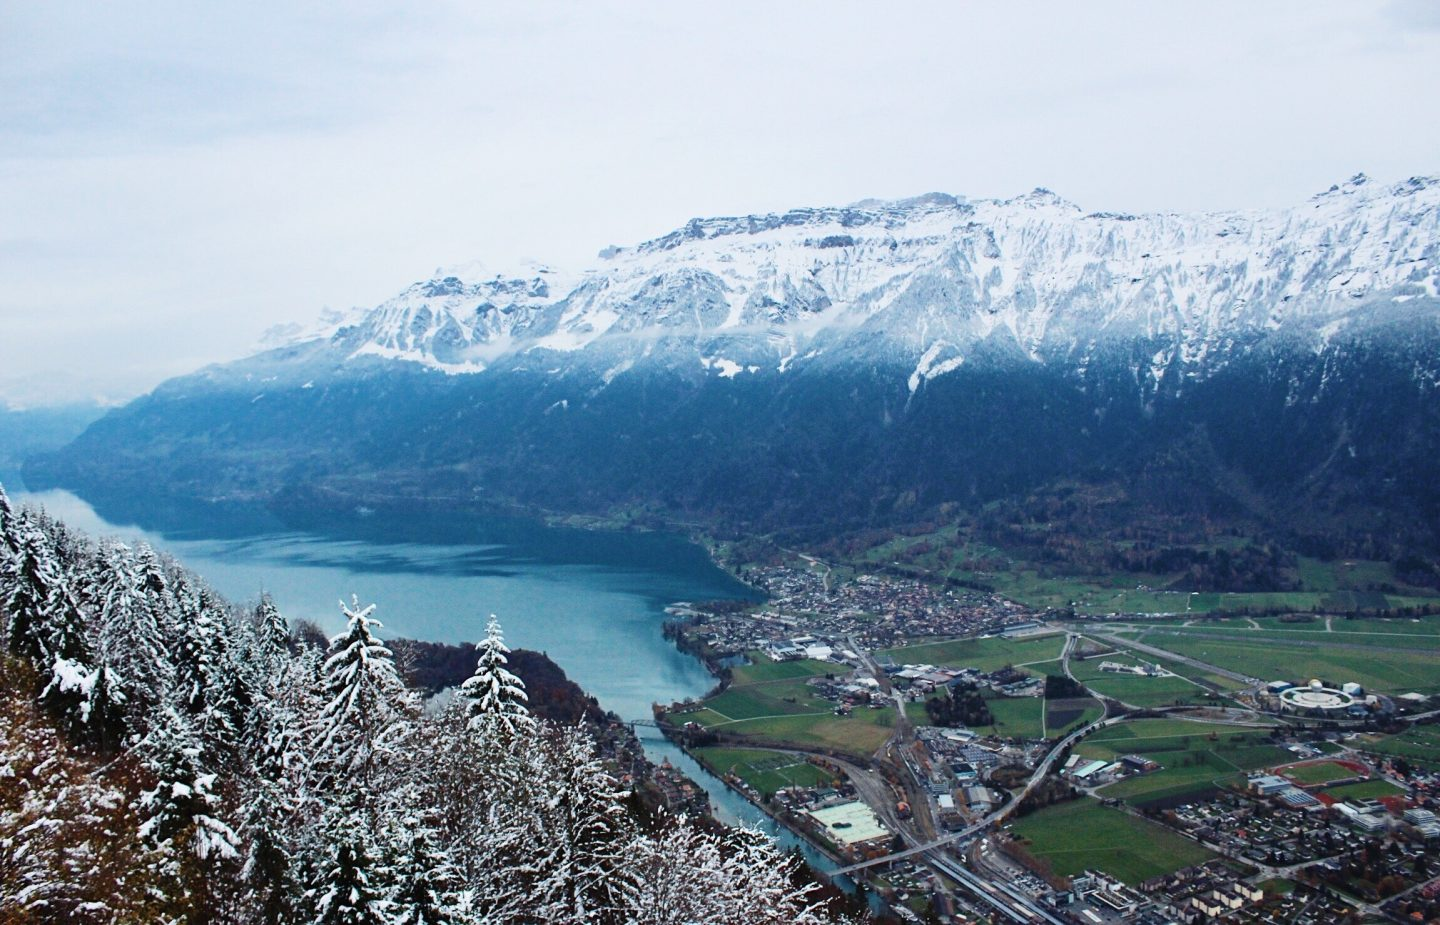 The view from the top of Harderkulm Mountain in Interlaken, Switzerland